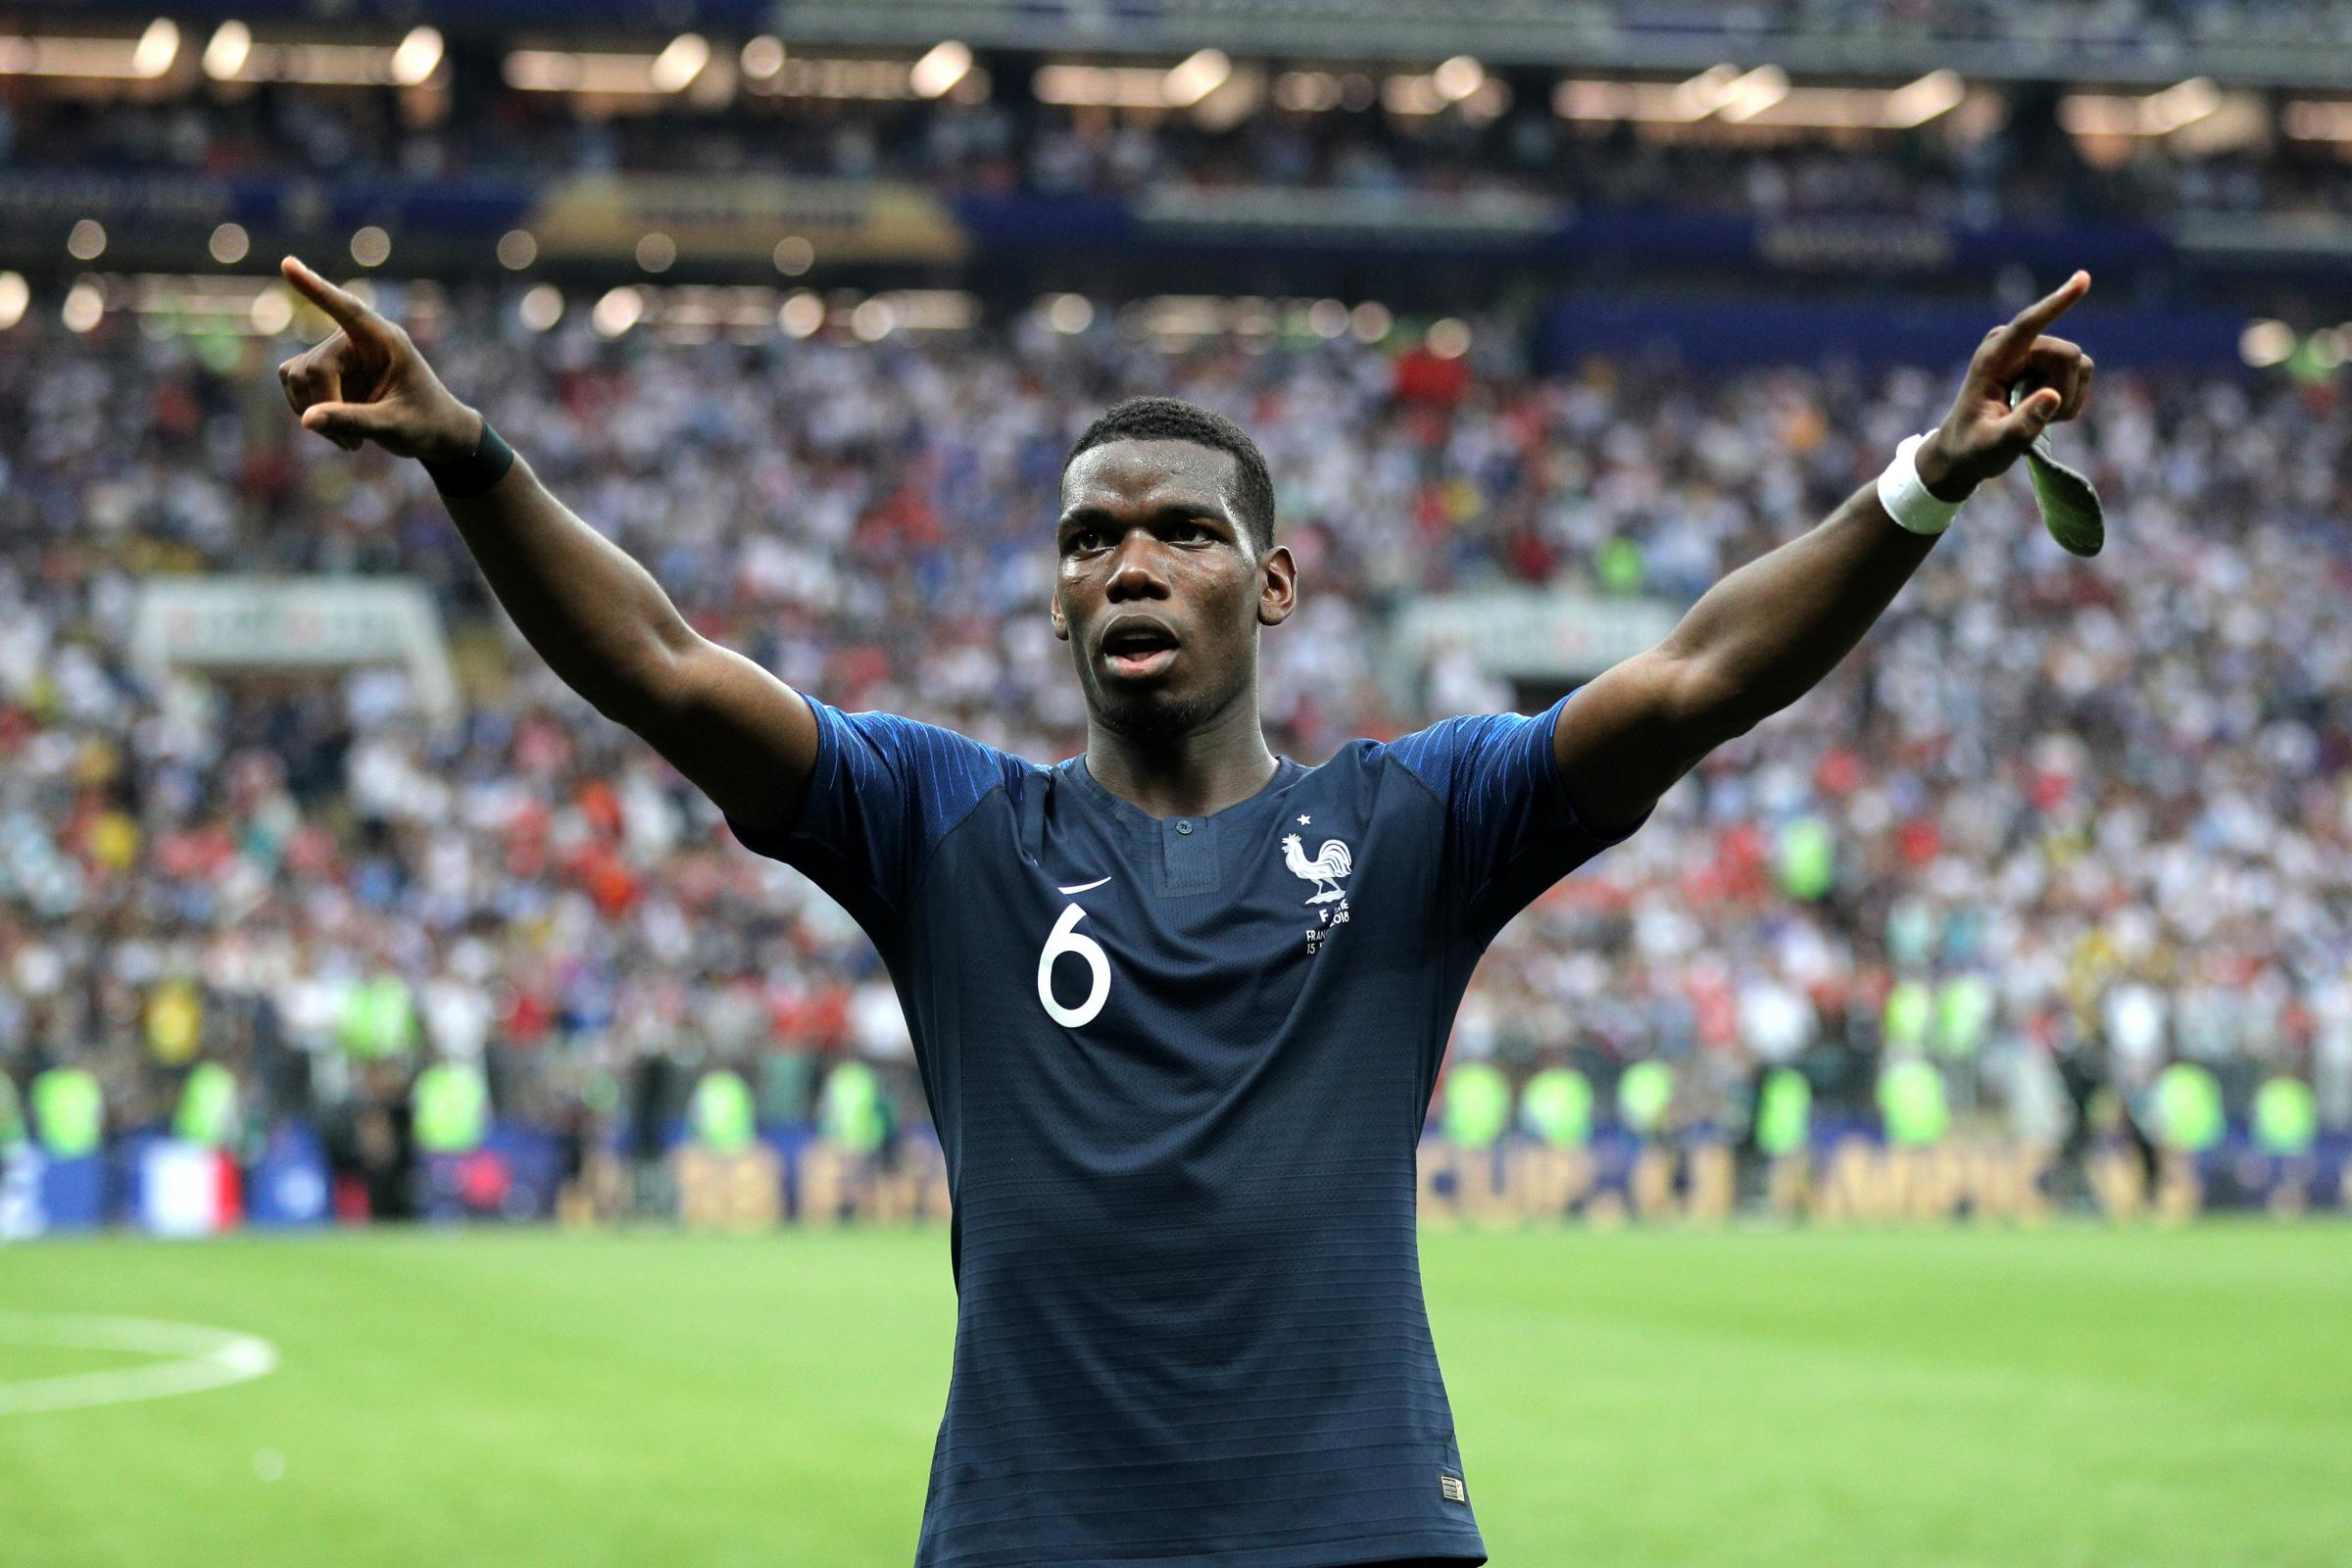 Paul Pogba has told France to put their World Cup heroics behind them